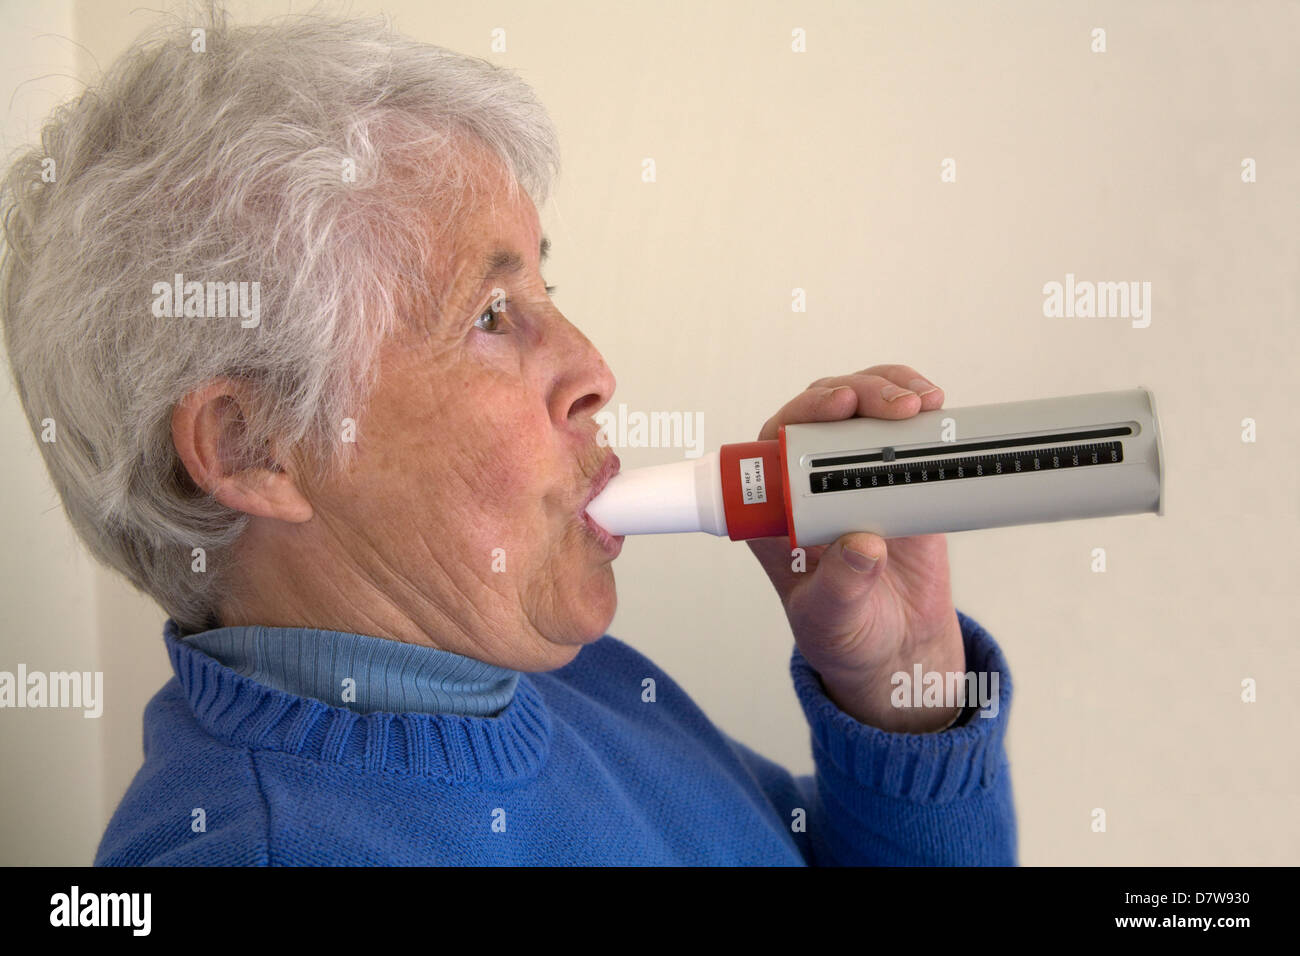 UK Elderly woman blowing into peak flow meter to monitor lung capacity - Stock Image